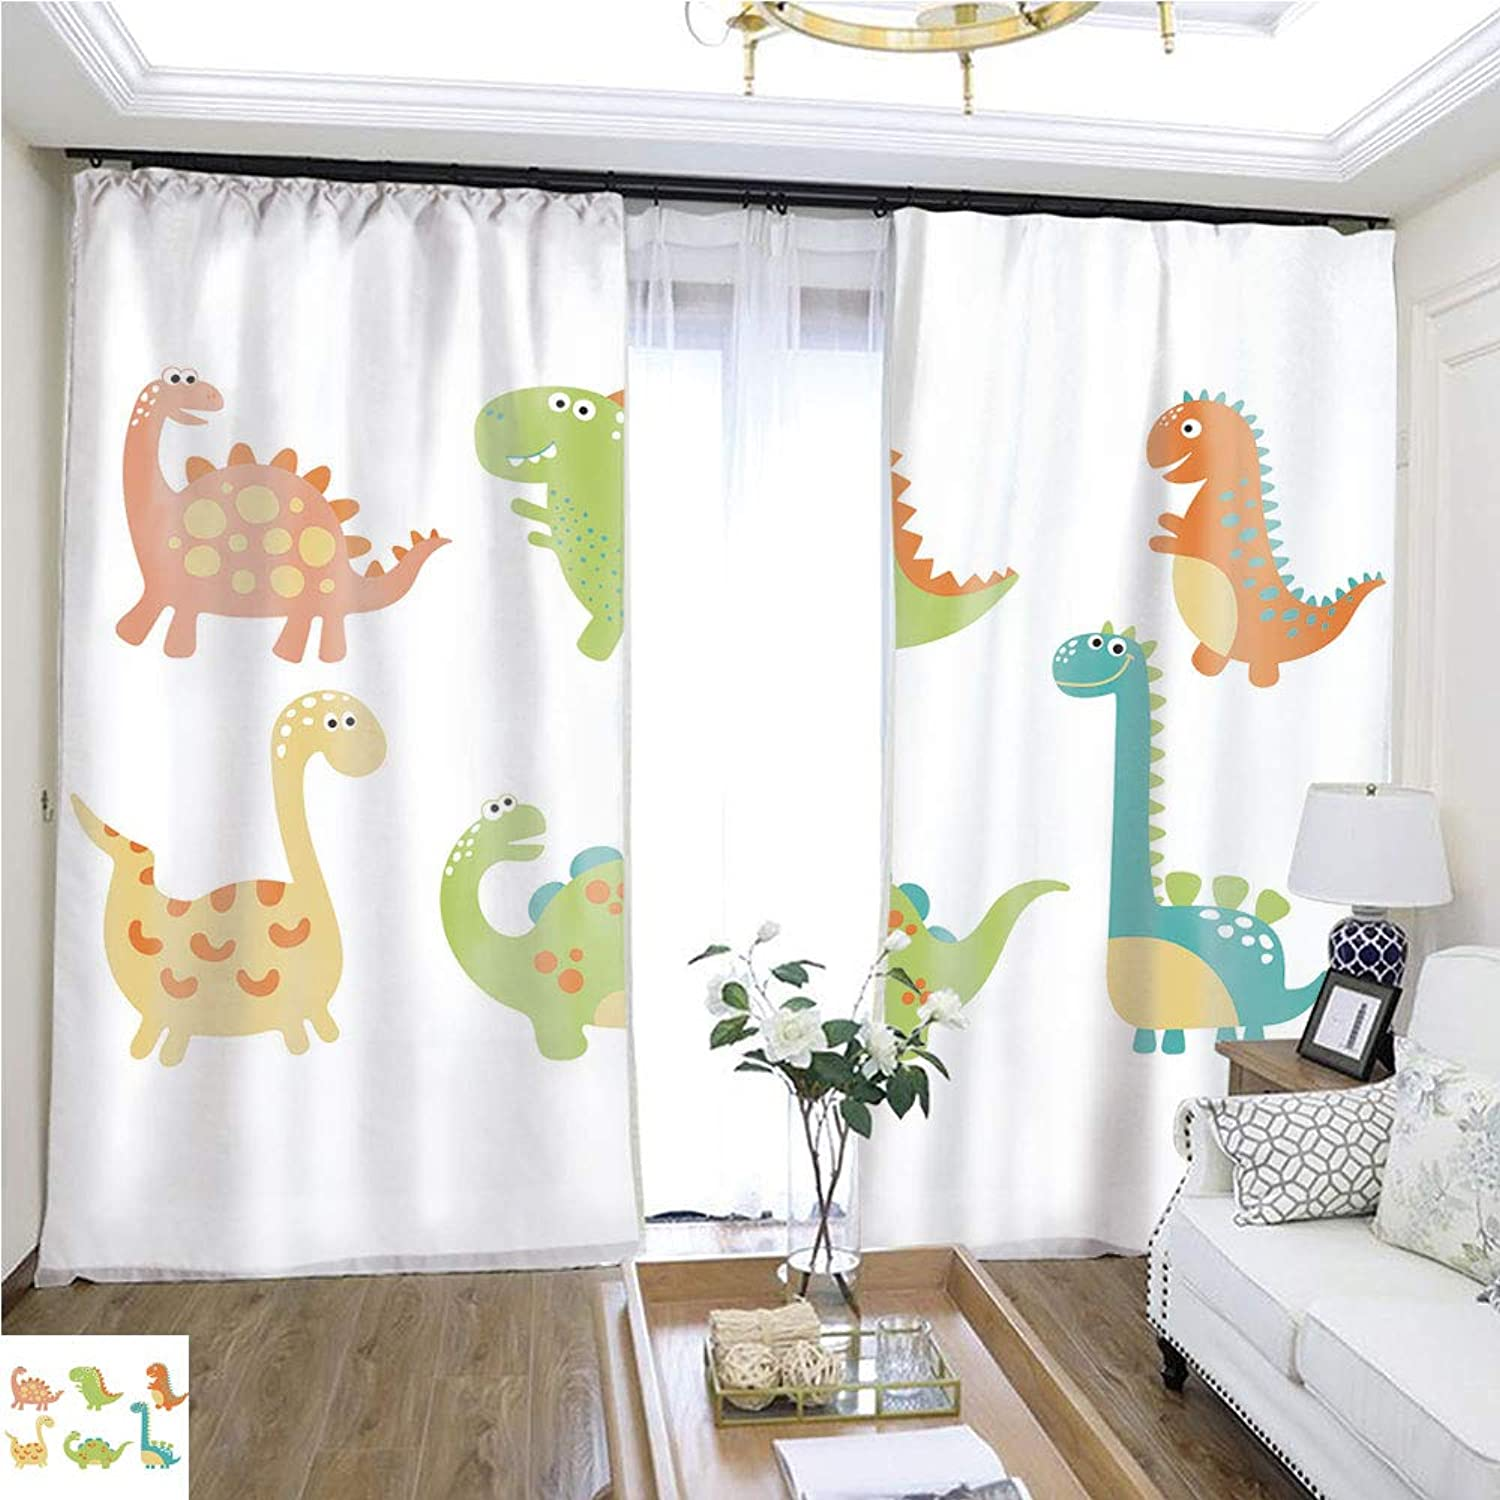 Air Port Screen Cute Dino illustration2 W108 x L82 Provide Heat Highprecision Curtains for bedrooms Living Rooms Kitchens etc.